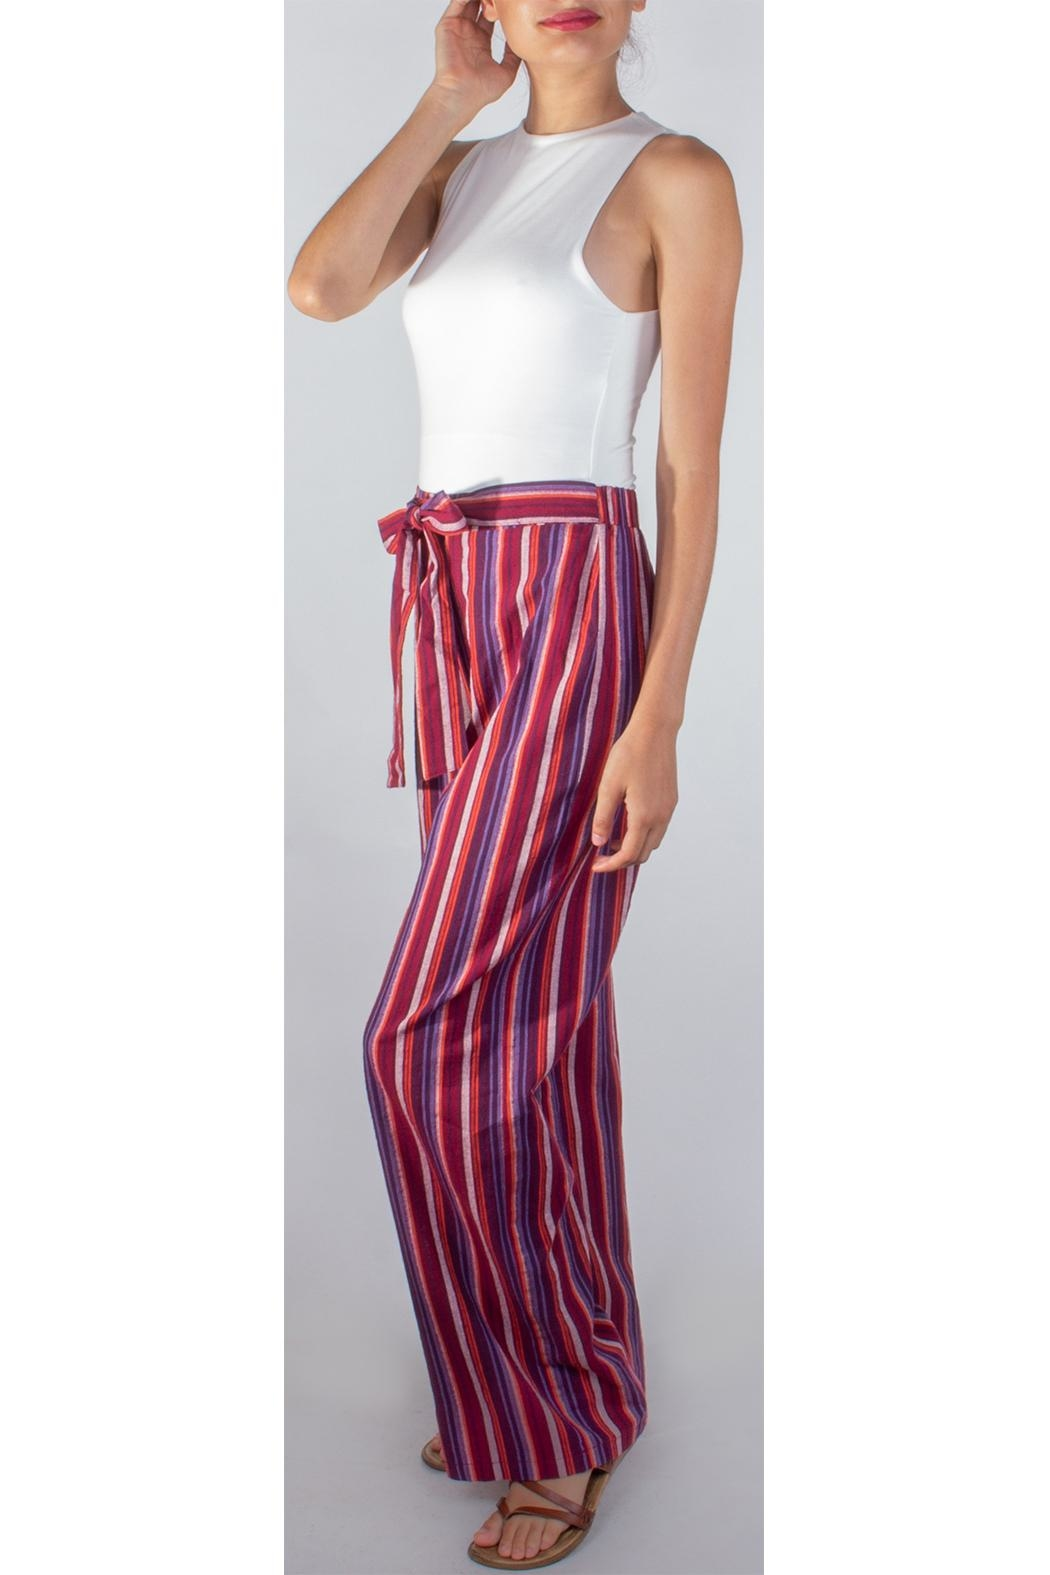 Miss Love Paperbag Striped Pants - Front Full Image